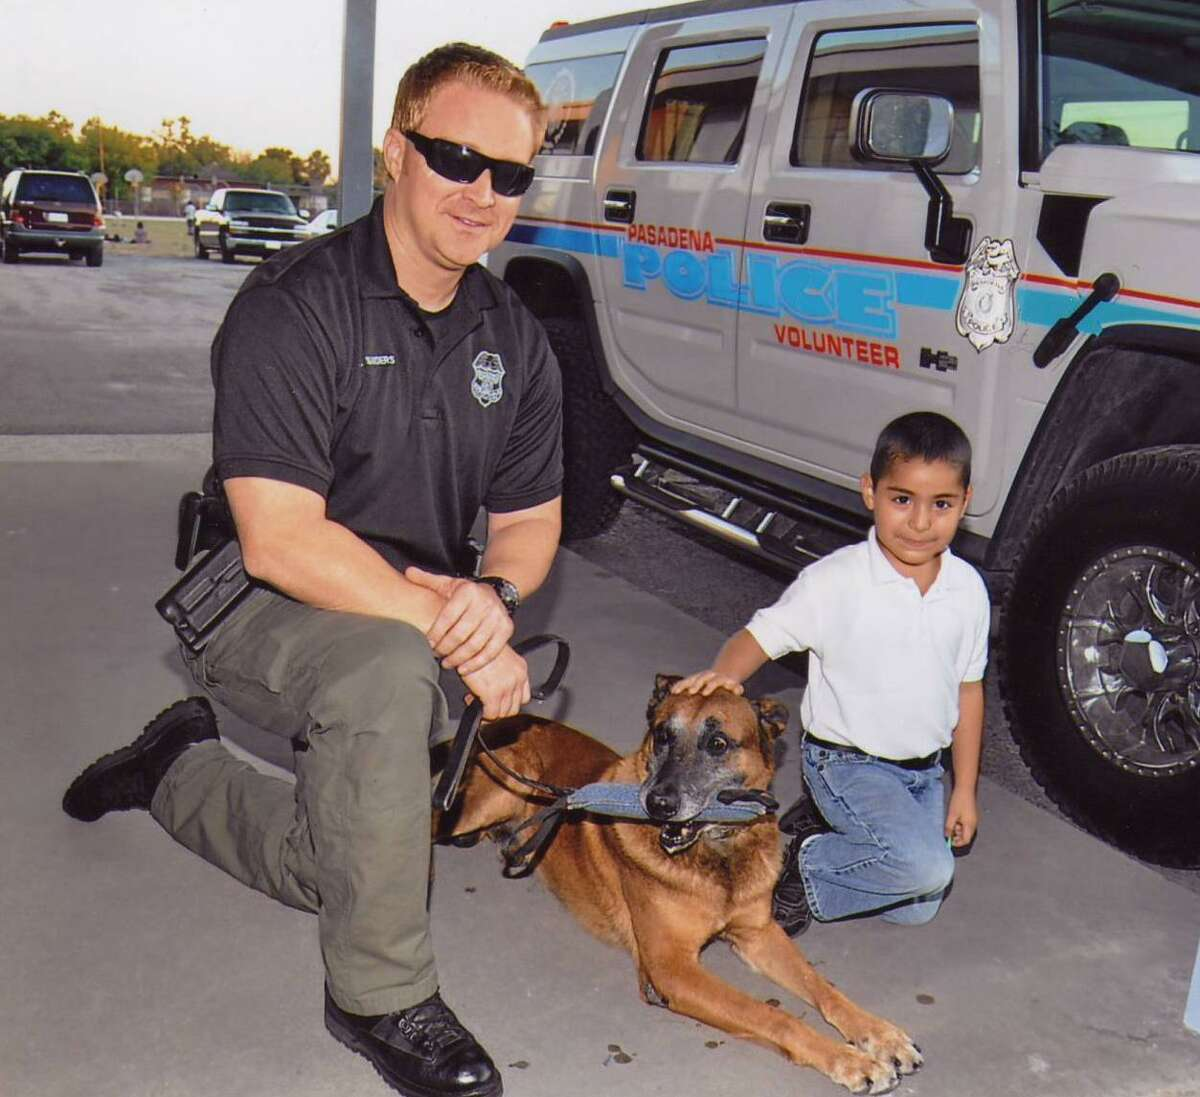 National Night Out is a longtime tradition in Pasadena. This year's event is set for Oct. 5. Pasadena police officer Adam Sanders brought a police dog to this 2011 Night Out event by the Queens Neighborhood Association, getting the attention of Ismael Argulo.